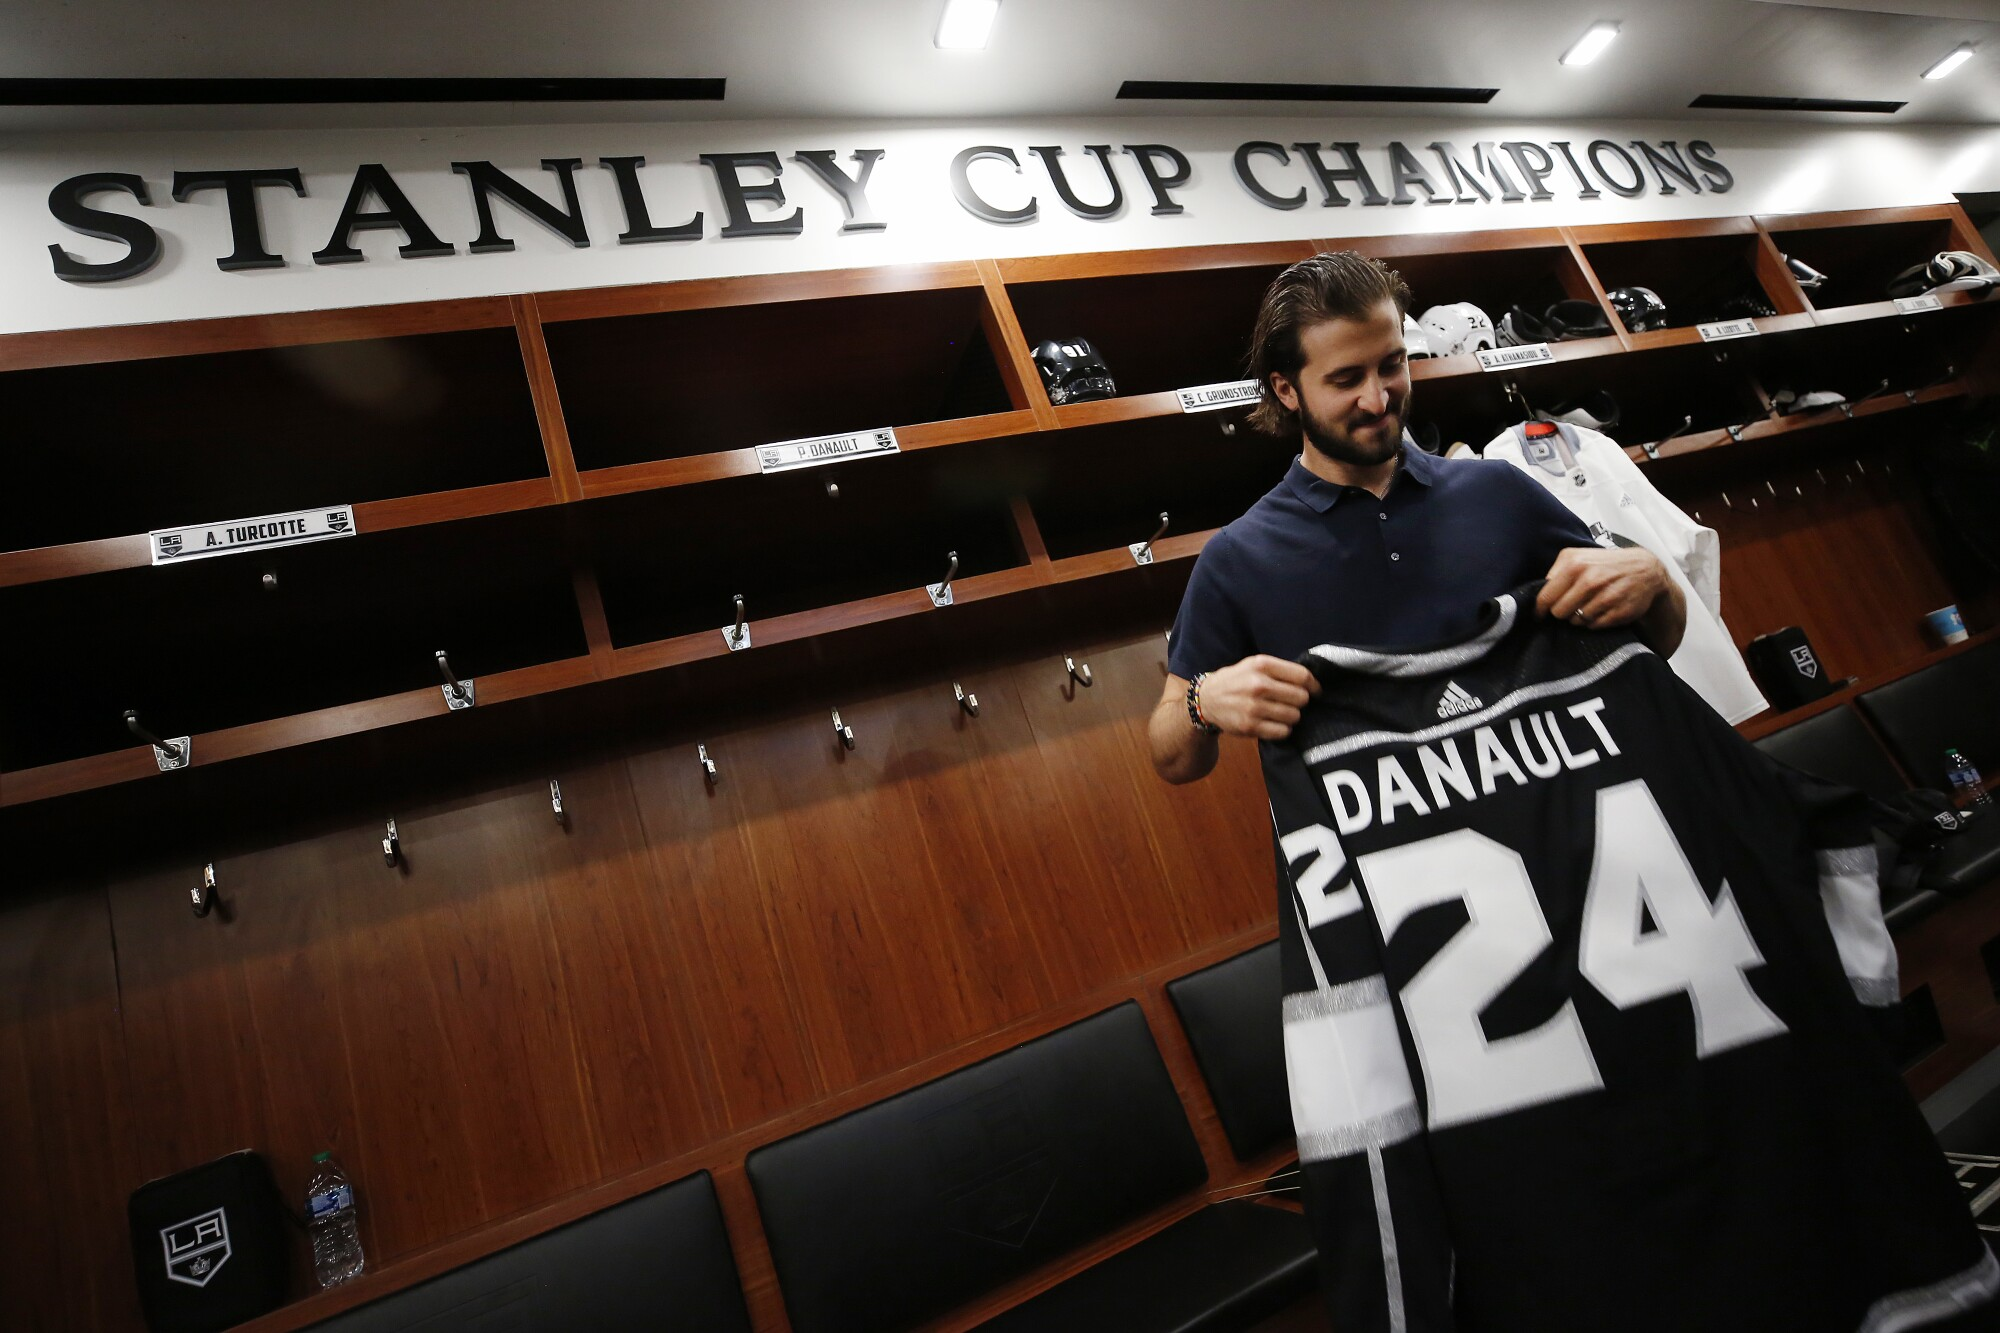 Los Angeles Kings player Phillip Danault holds his team jersey in the locker room of the L.A. Kings practice facility